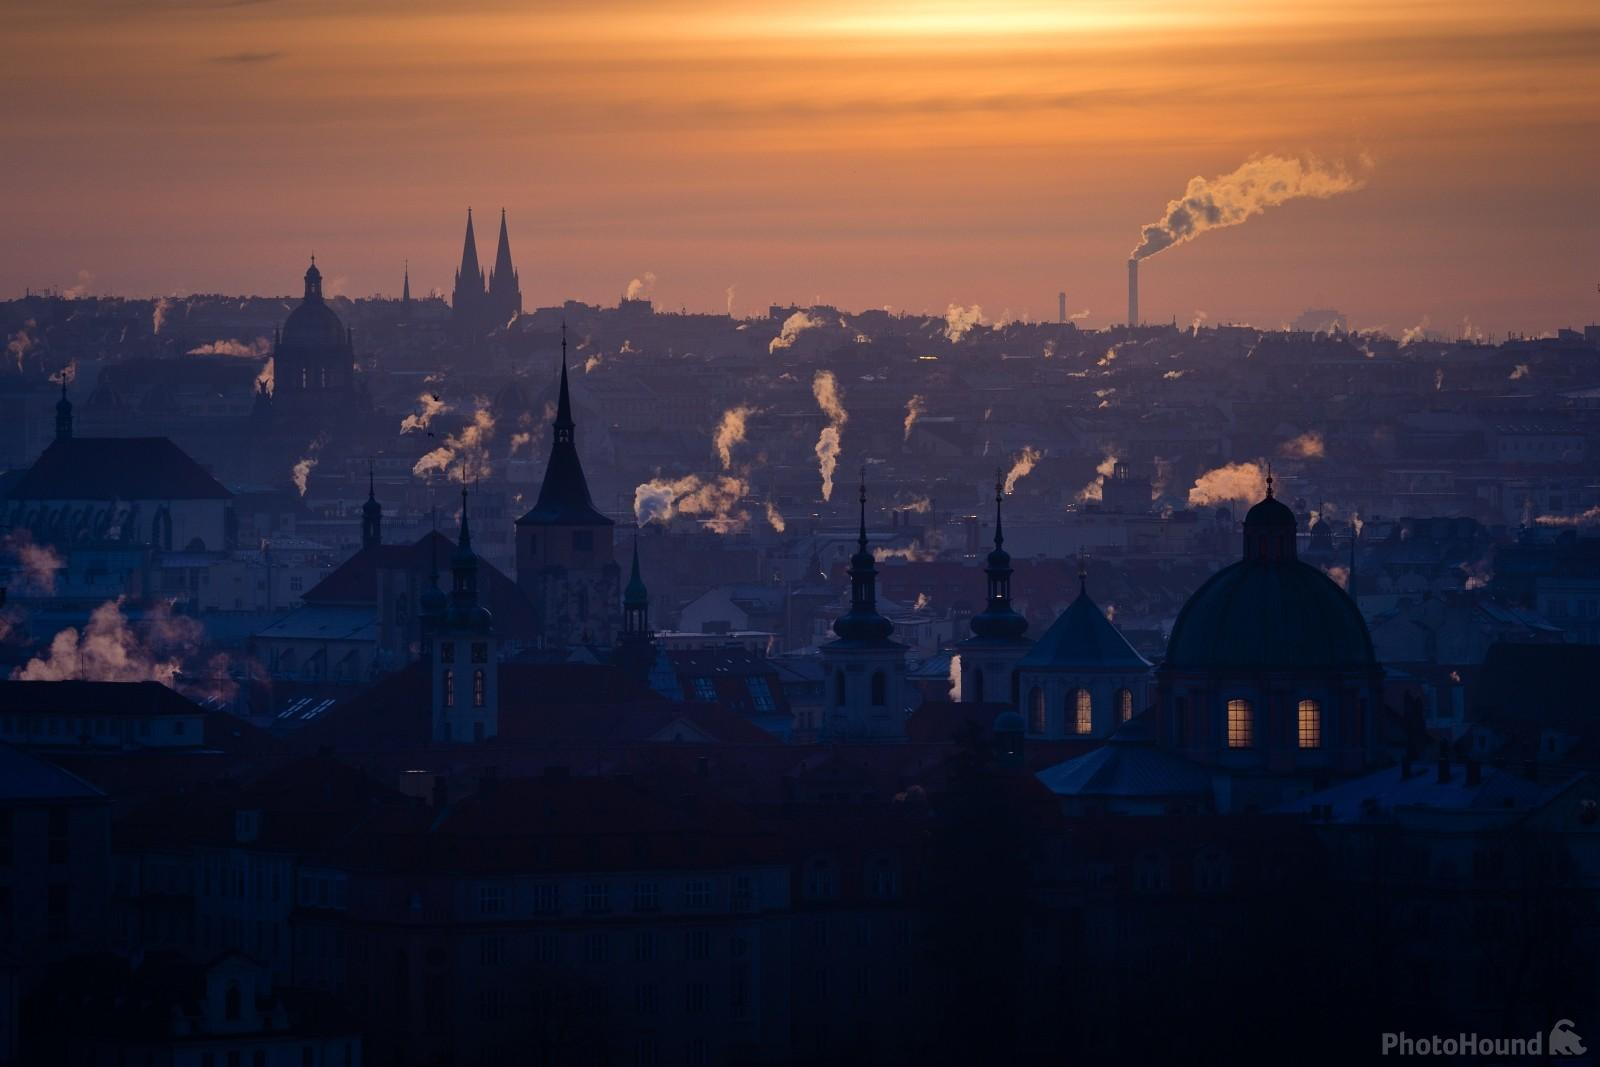 Cold winter morning atmosphere of the Prague as seen from the view by Černá věž (Cerna Tower)